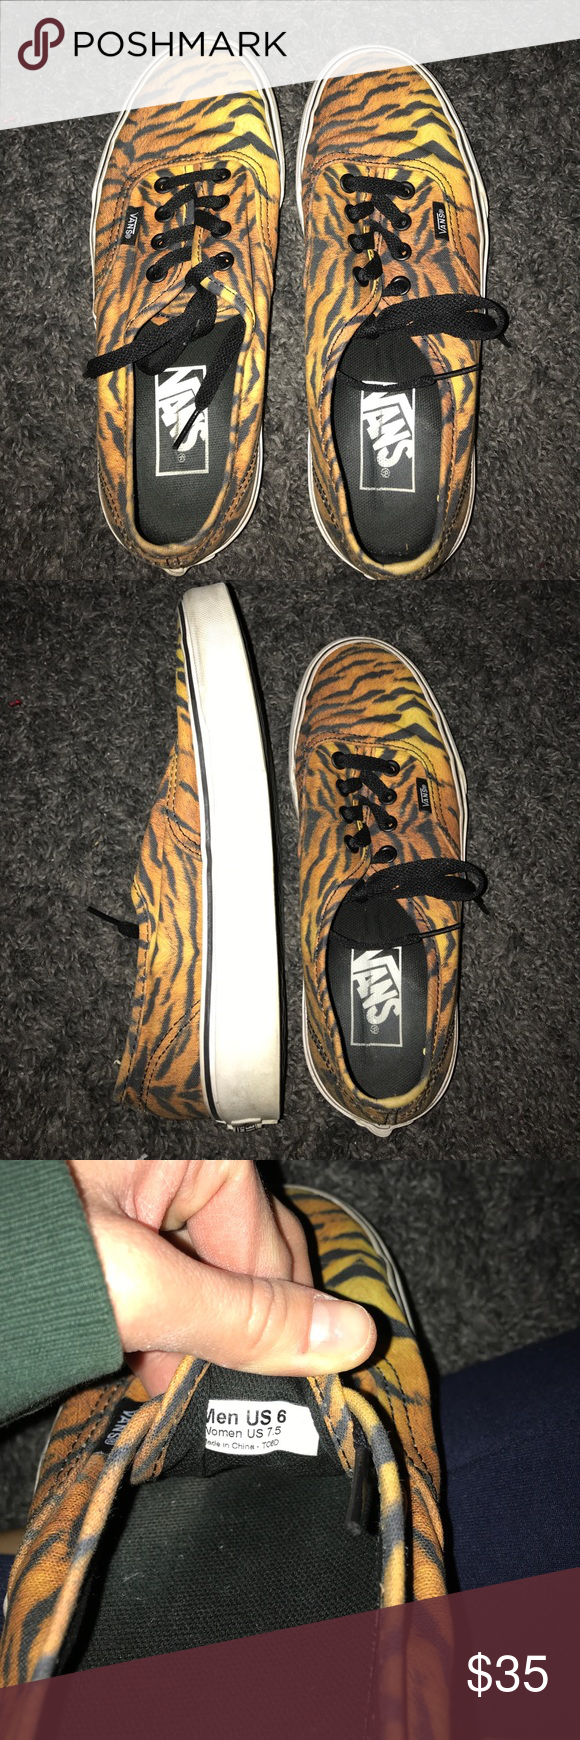 Vans Tiger Print In great condition, love this unique print!!  Vans Shoes Sneakers